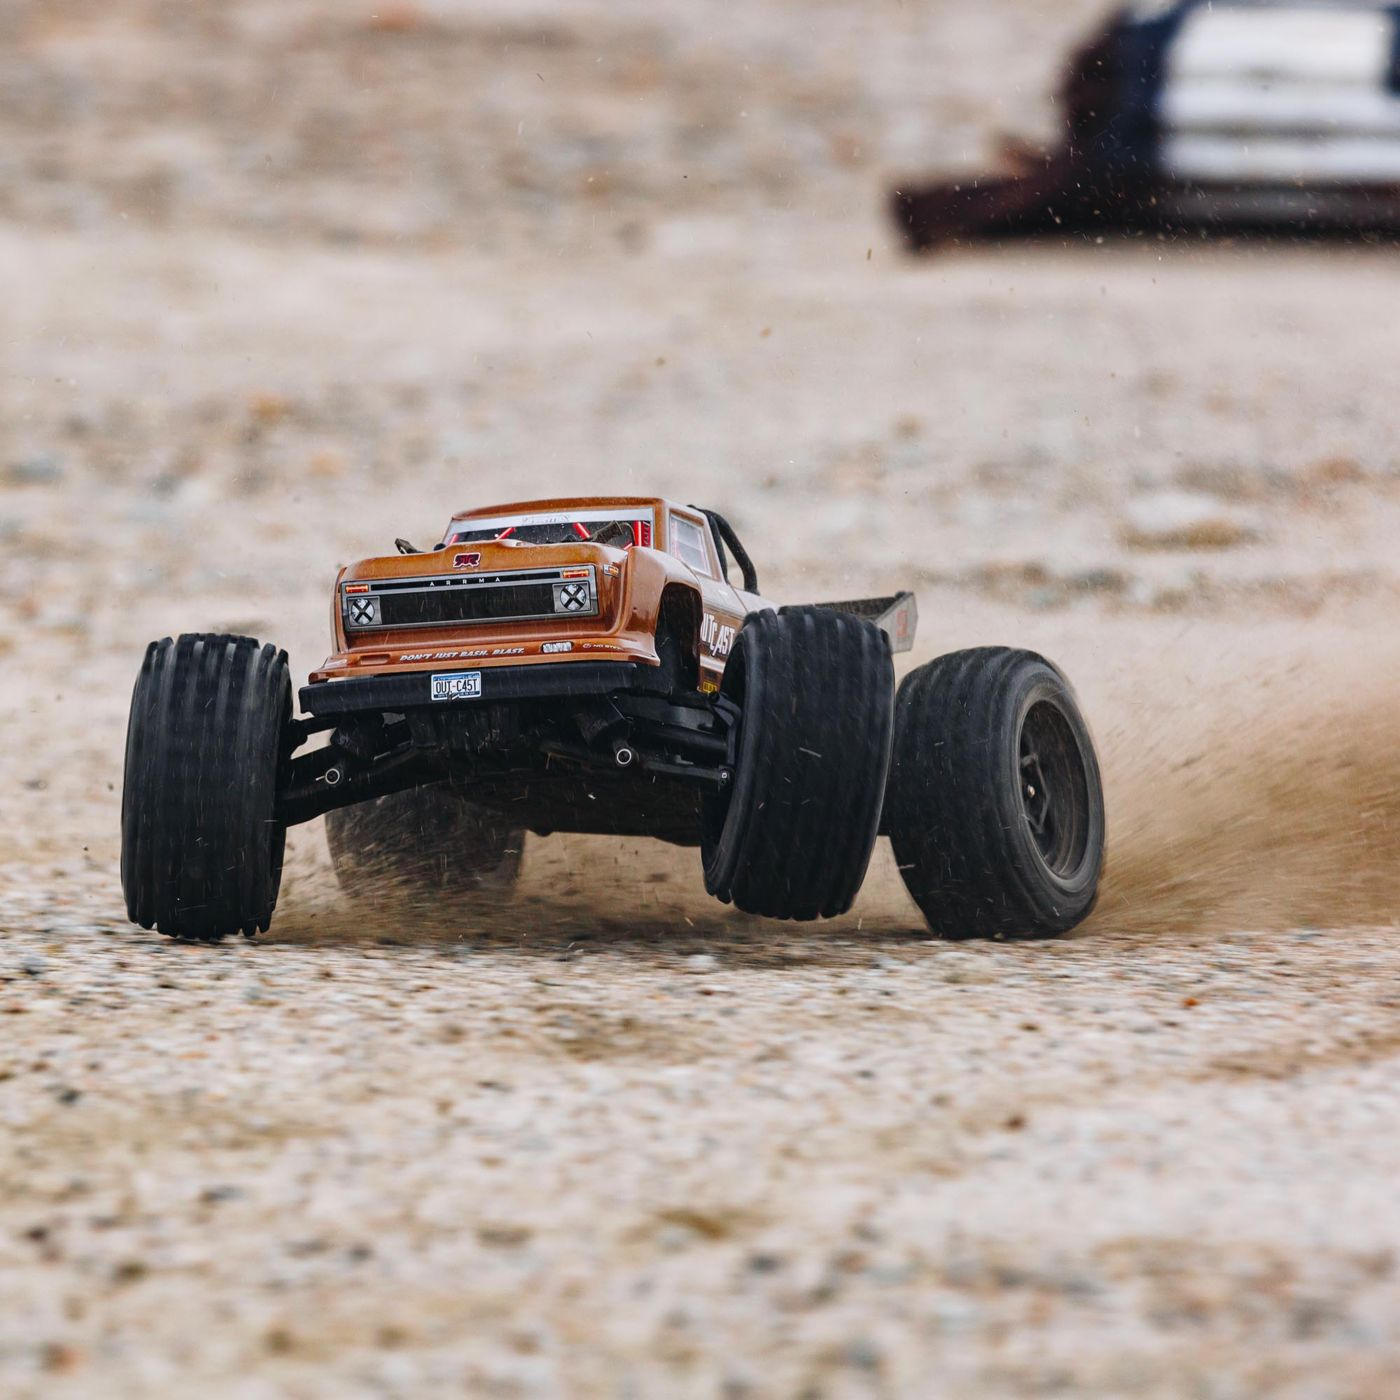 Action Time with the ARRMA Outcast 4S BLX [Video]